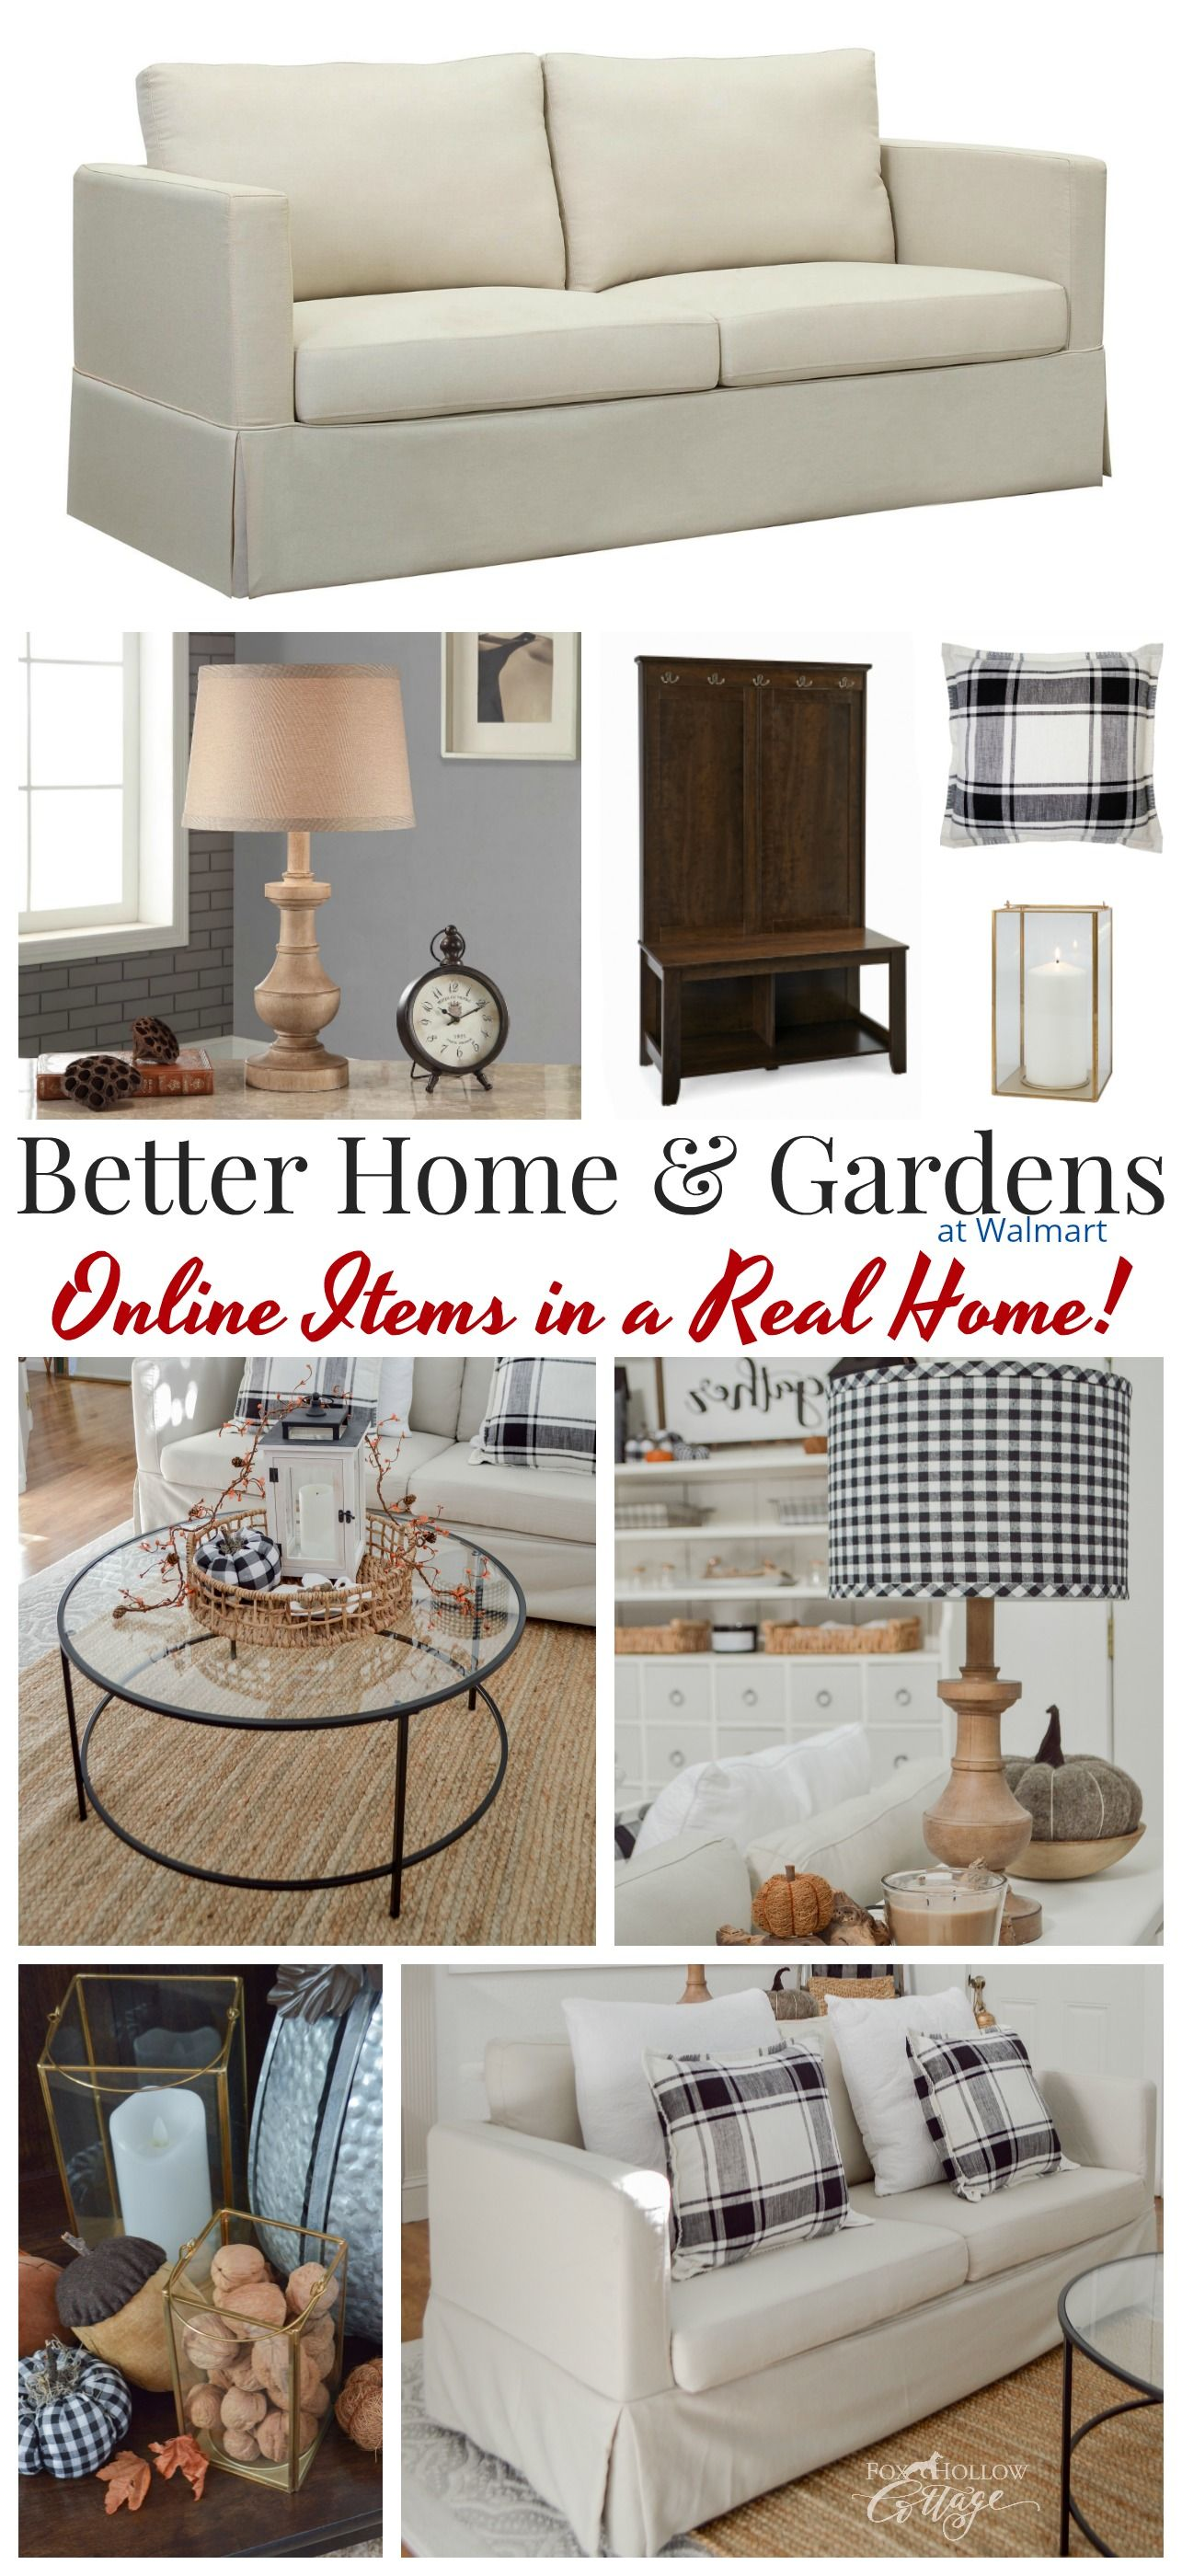 Online shopping with Better Homes & Gardens at Walmart - Real life decorating results - Black, White & Neutral Home Decor Basics - Affordably Effortless Decorating Ideas for Everyday, and into Fall. Cottage farmhouse living room styling. Matte black & glass coffee table, Slip cover sofa. #bhg #bhghome #sponsored #modernfarmhouse #farmhousestyle #livingroomideas #neutralhome #farmhouselivingroom #cottagestyle #coffeetable #neutralsofa #plaid #buffalocheck